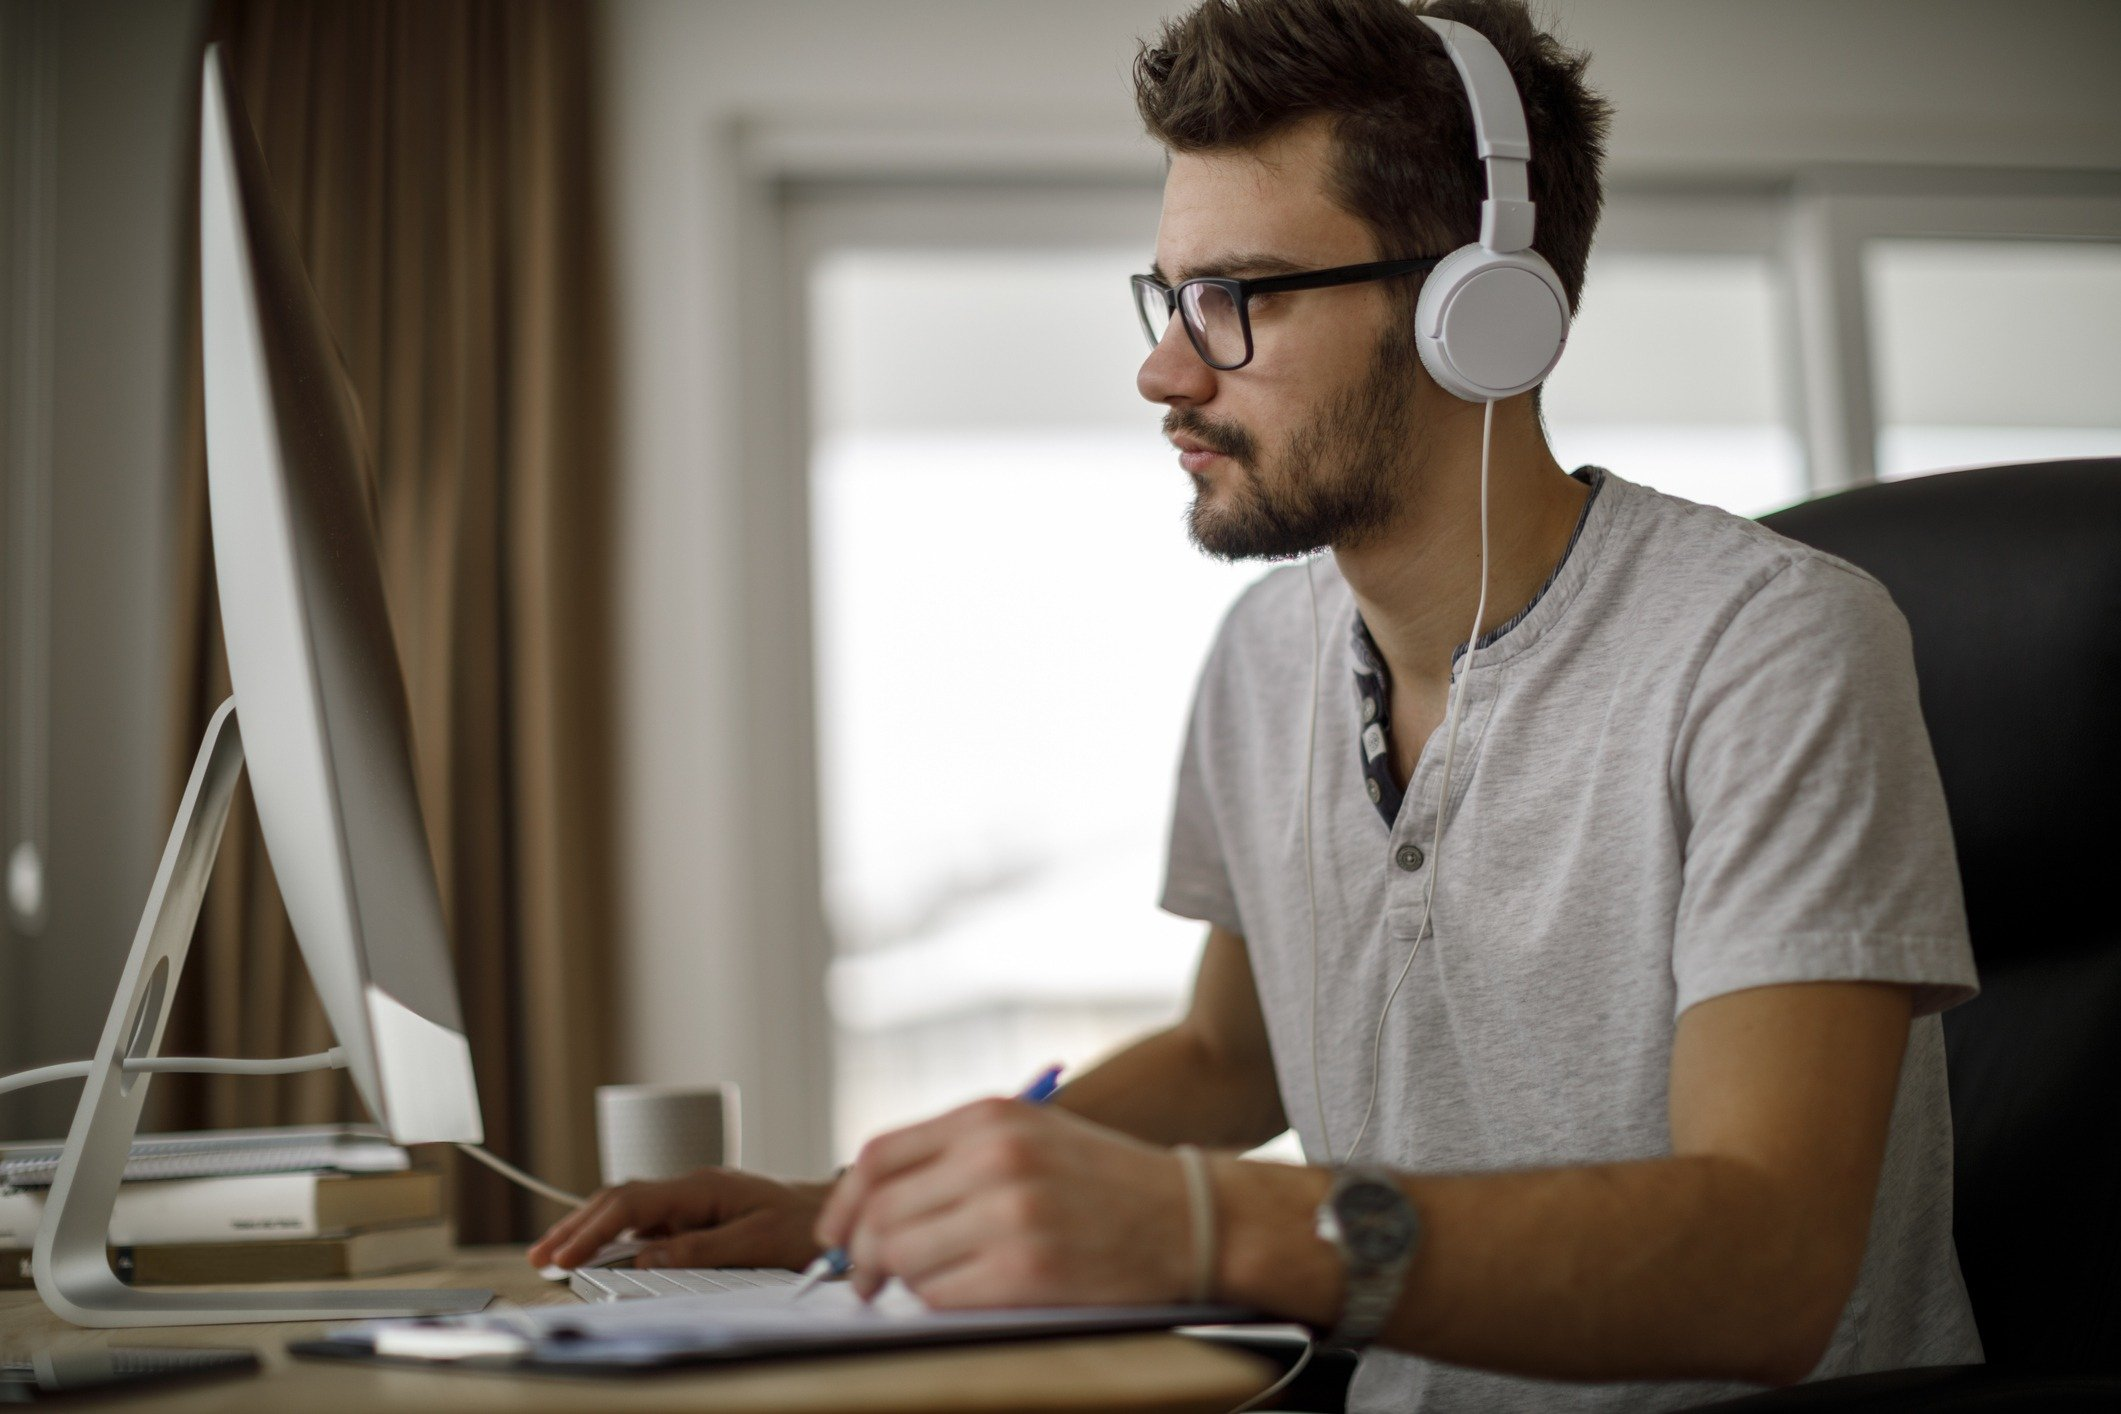 Young man using computer and taking notes - Featured Image